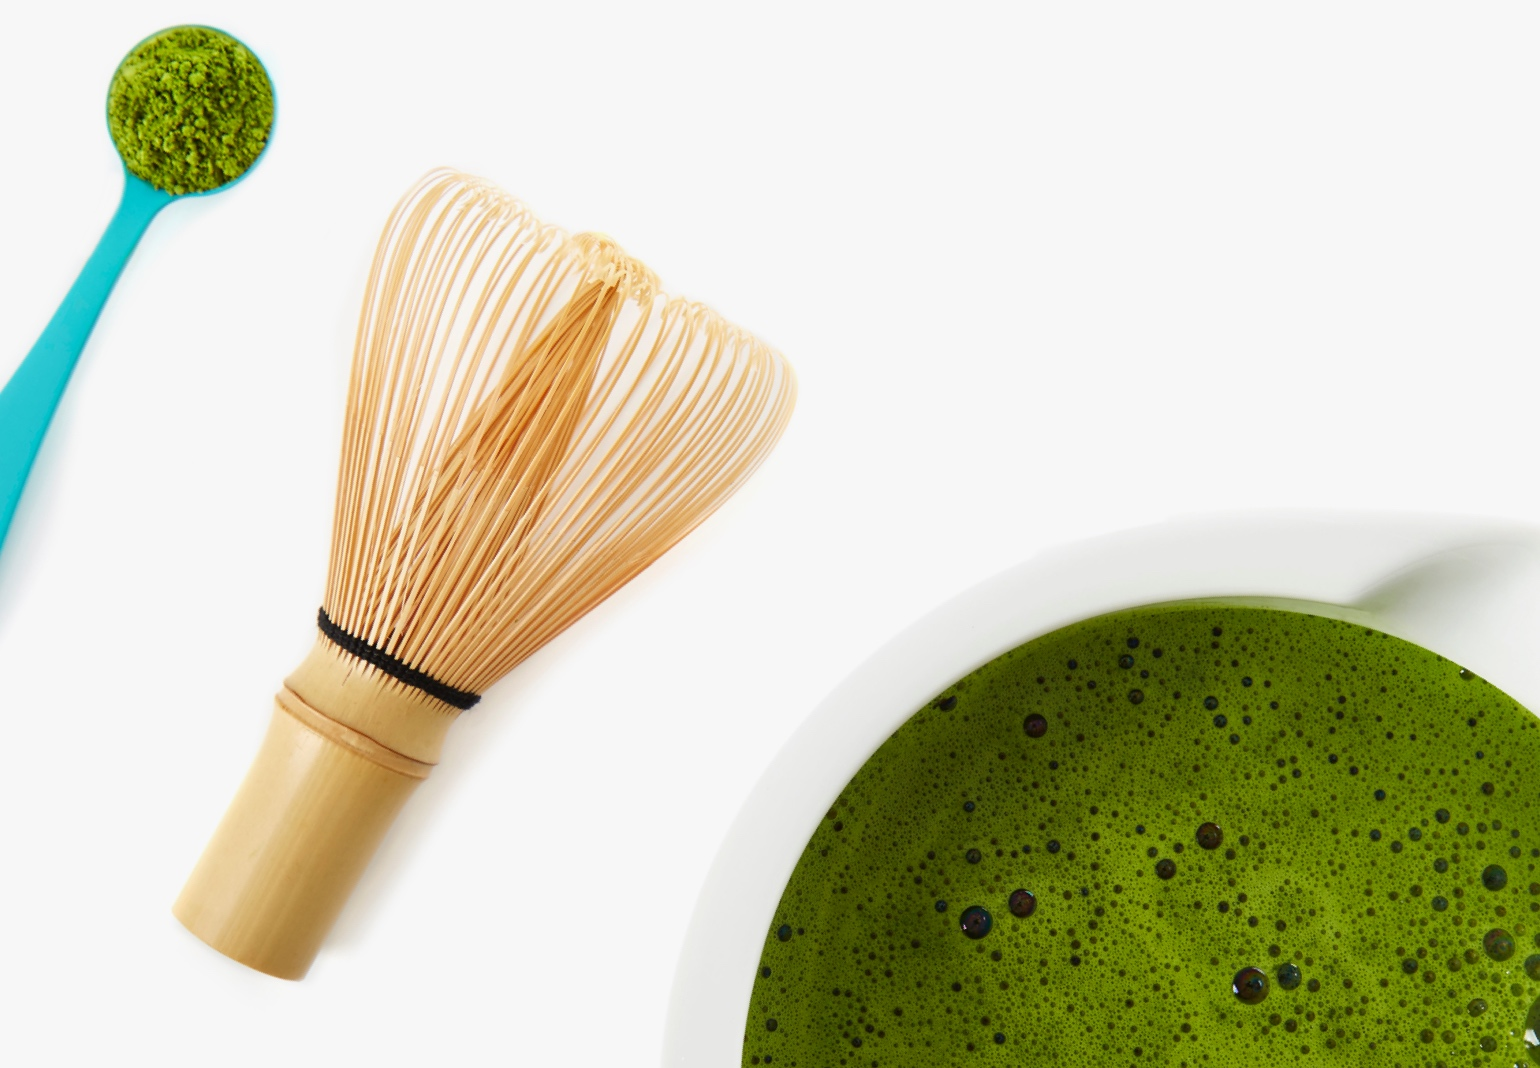 A whisk, spoon and bowl filled with matcha.